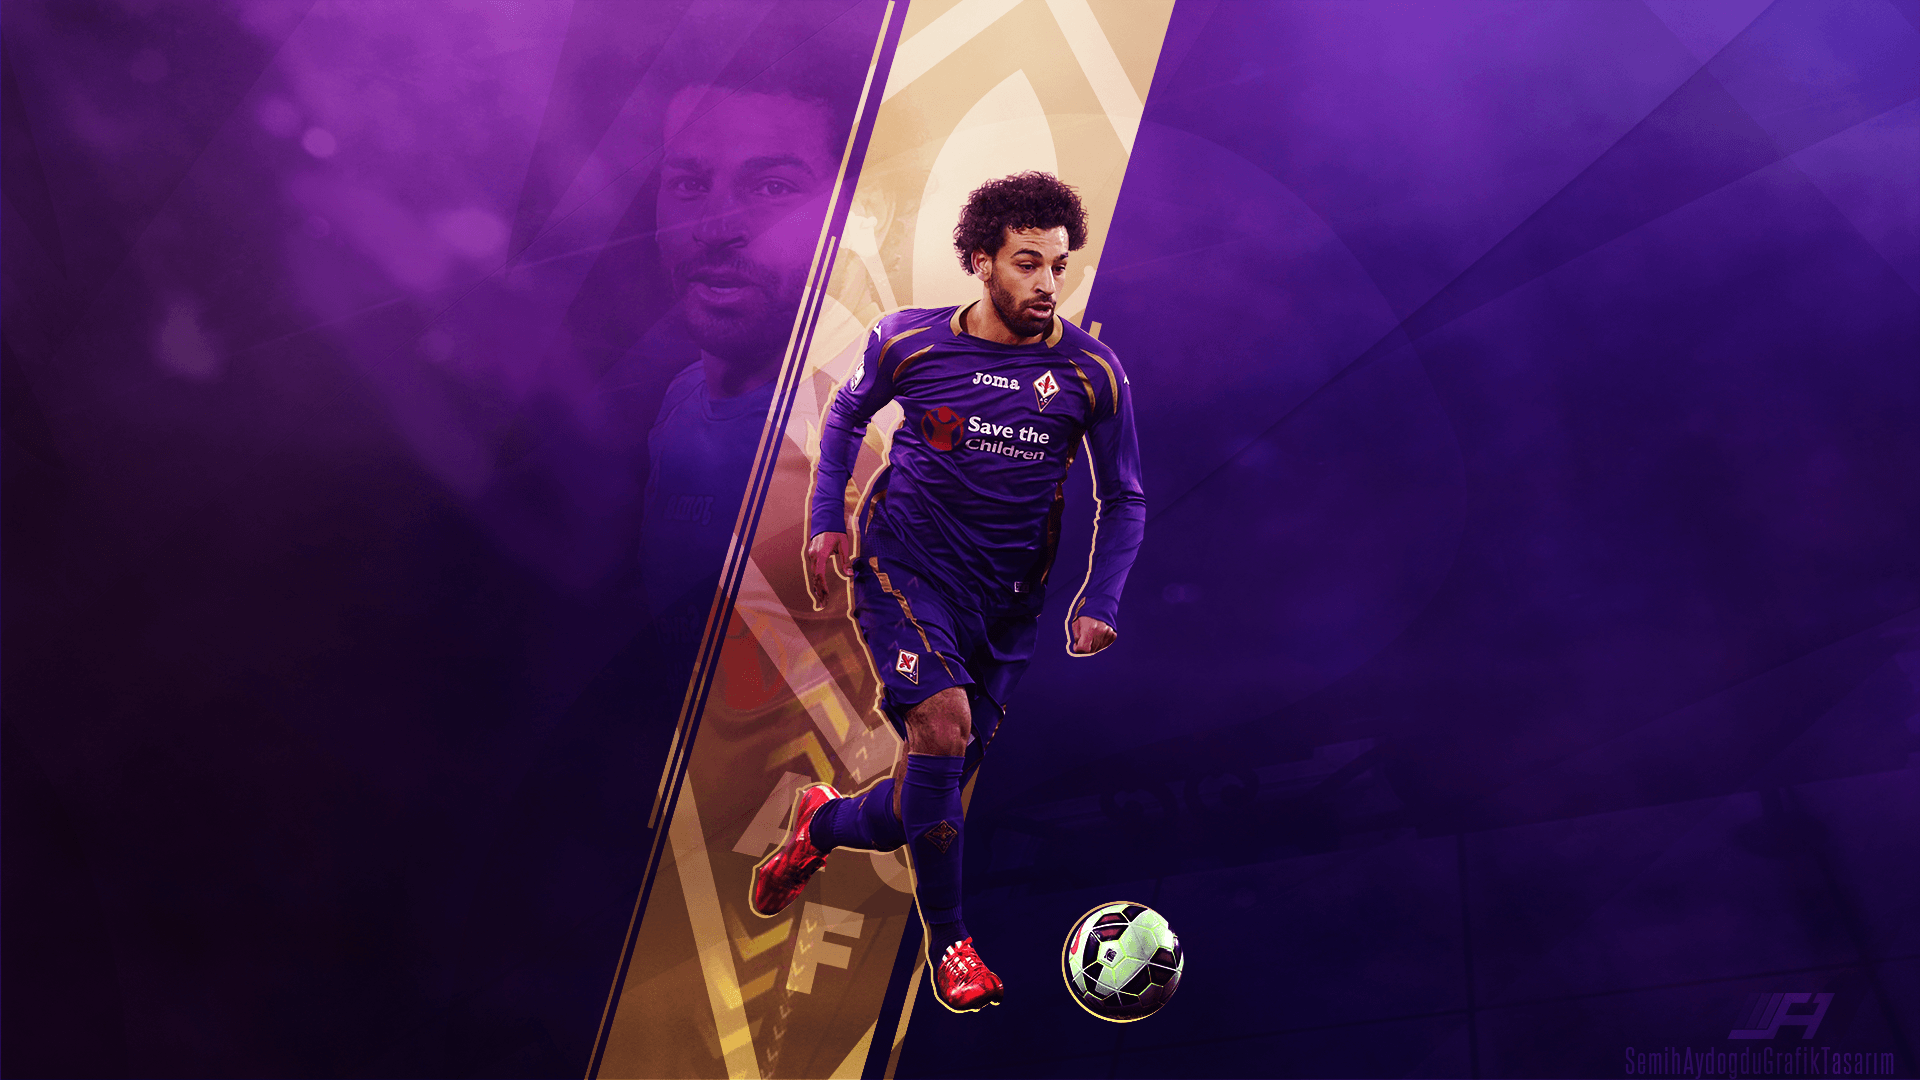 Mohamed Salah Wallpapers